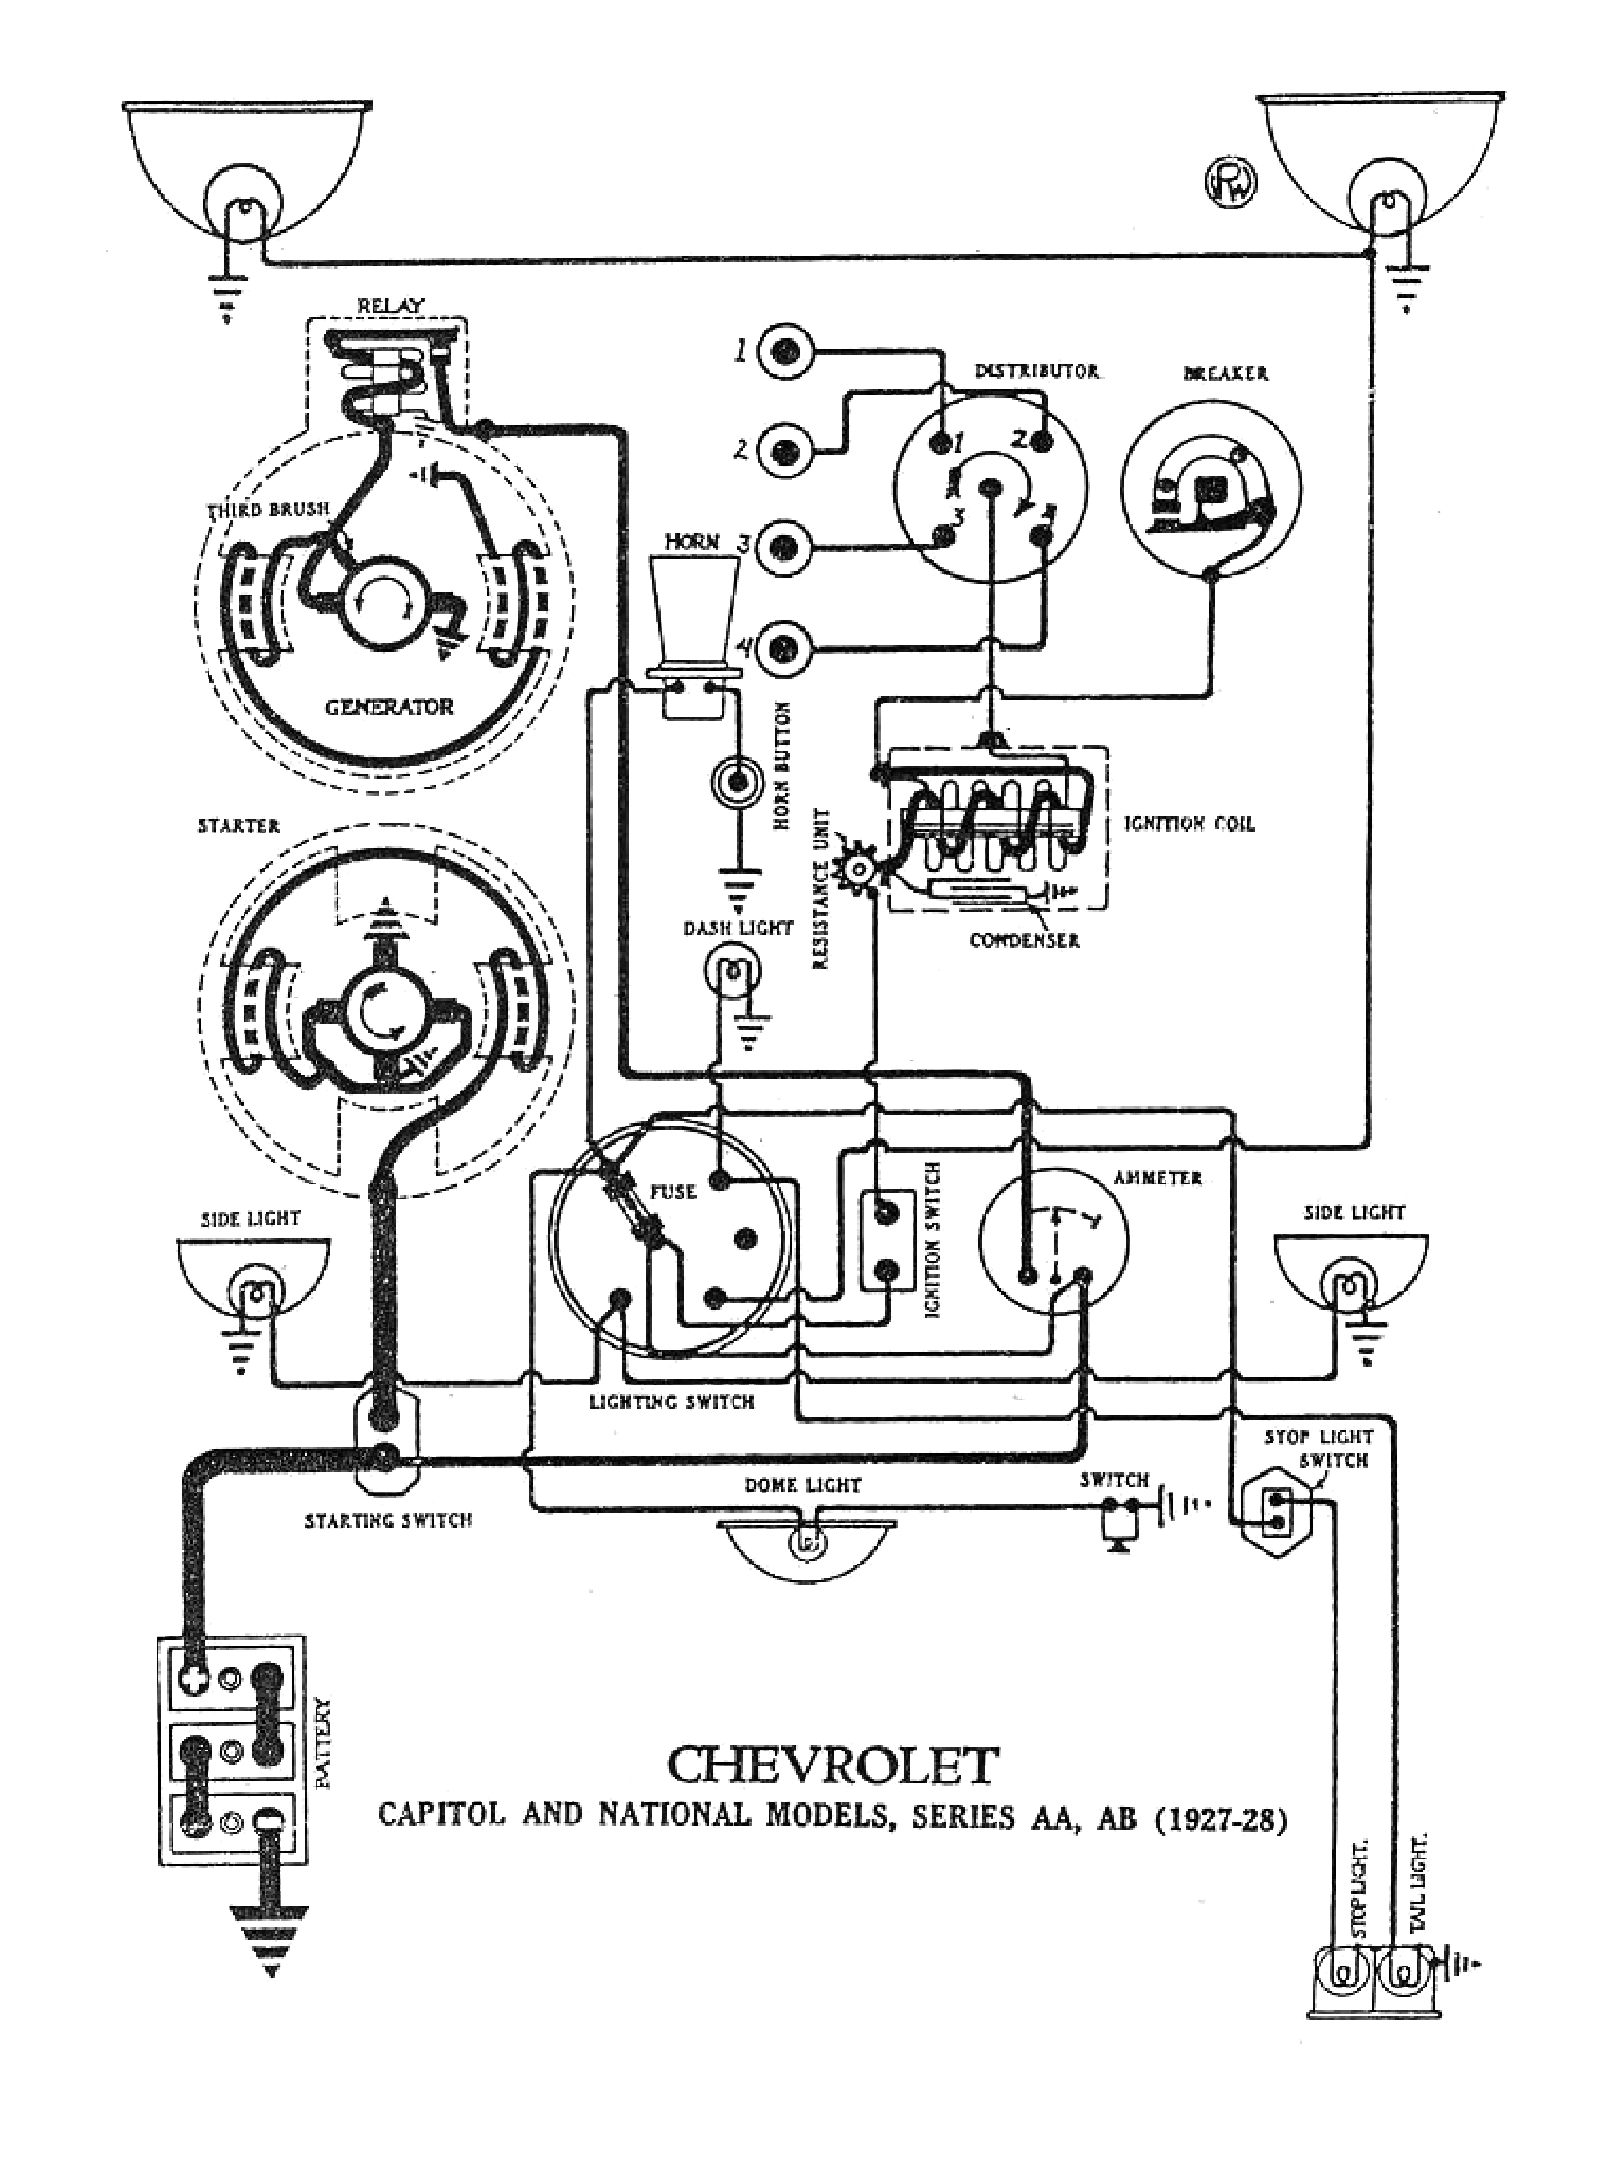 1930 model a ford wiring diagram html